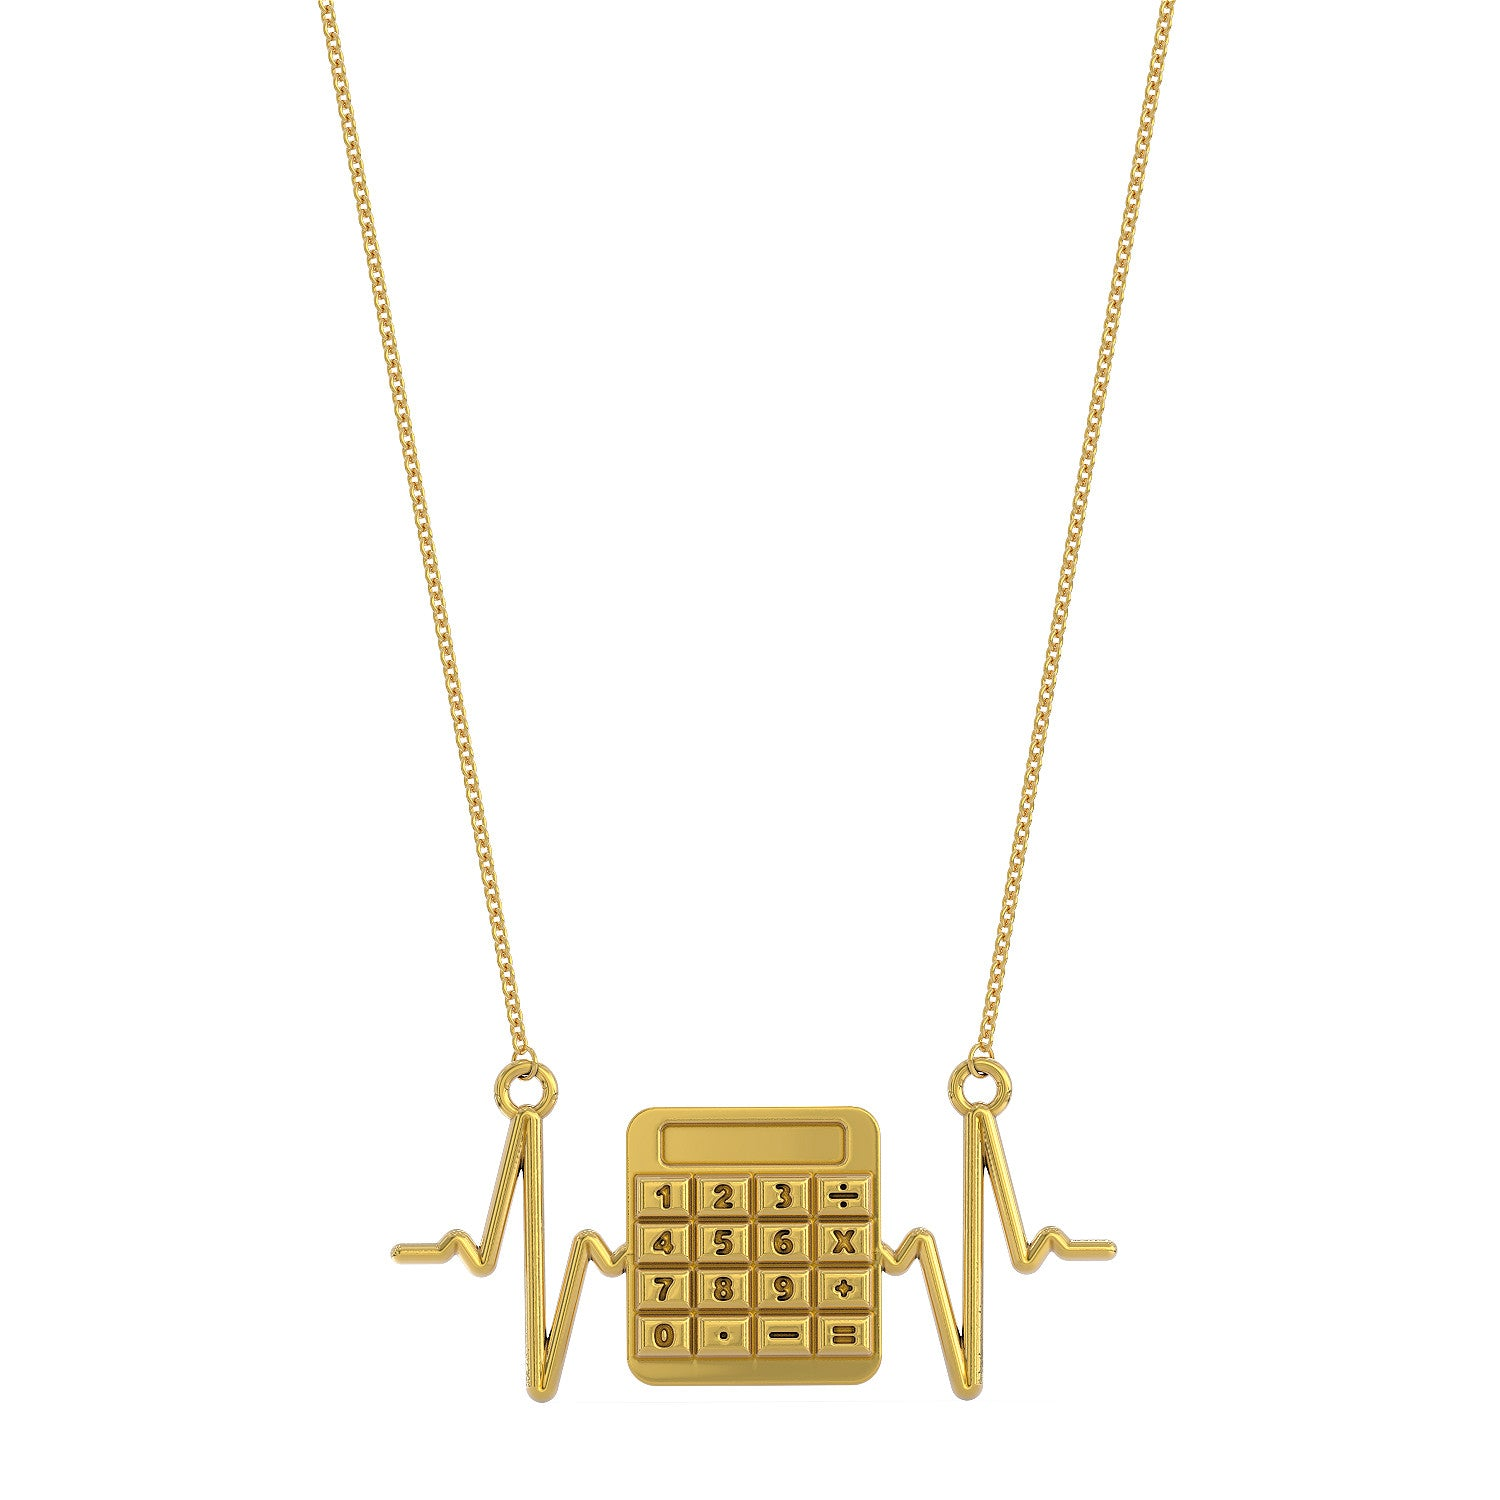 Accountant Heartbeat Necklace